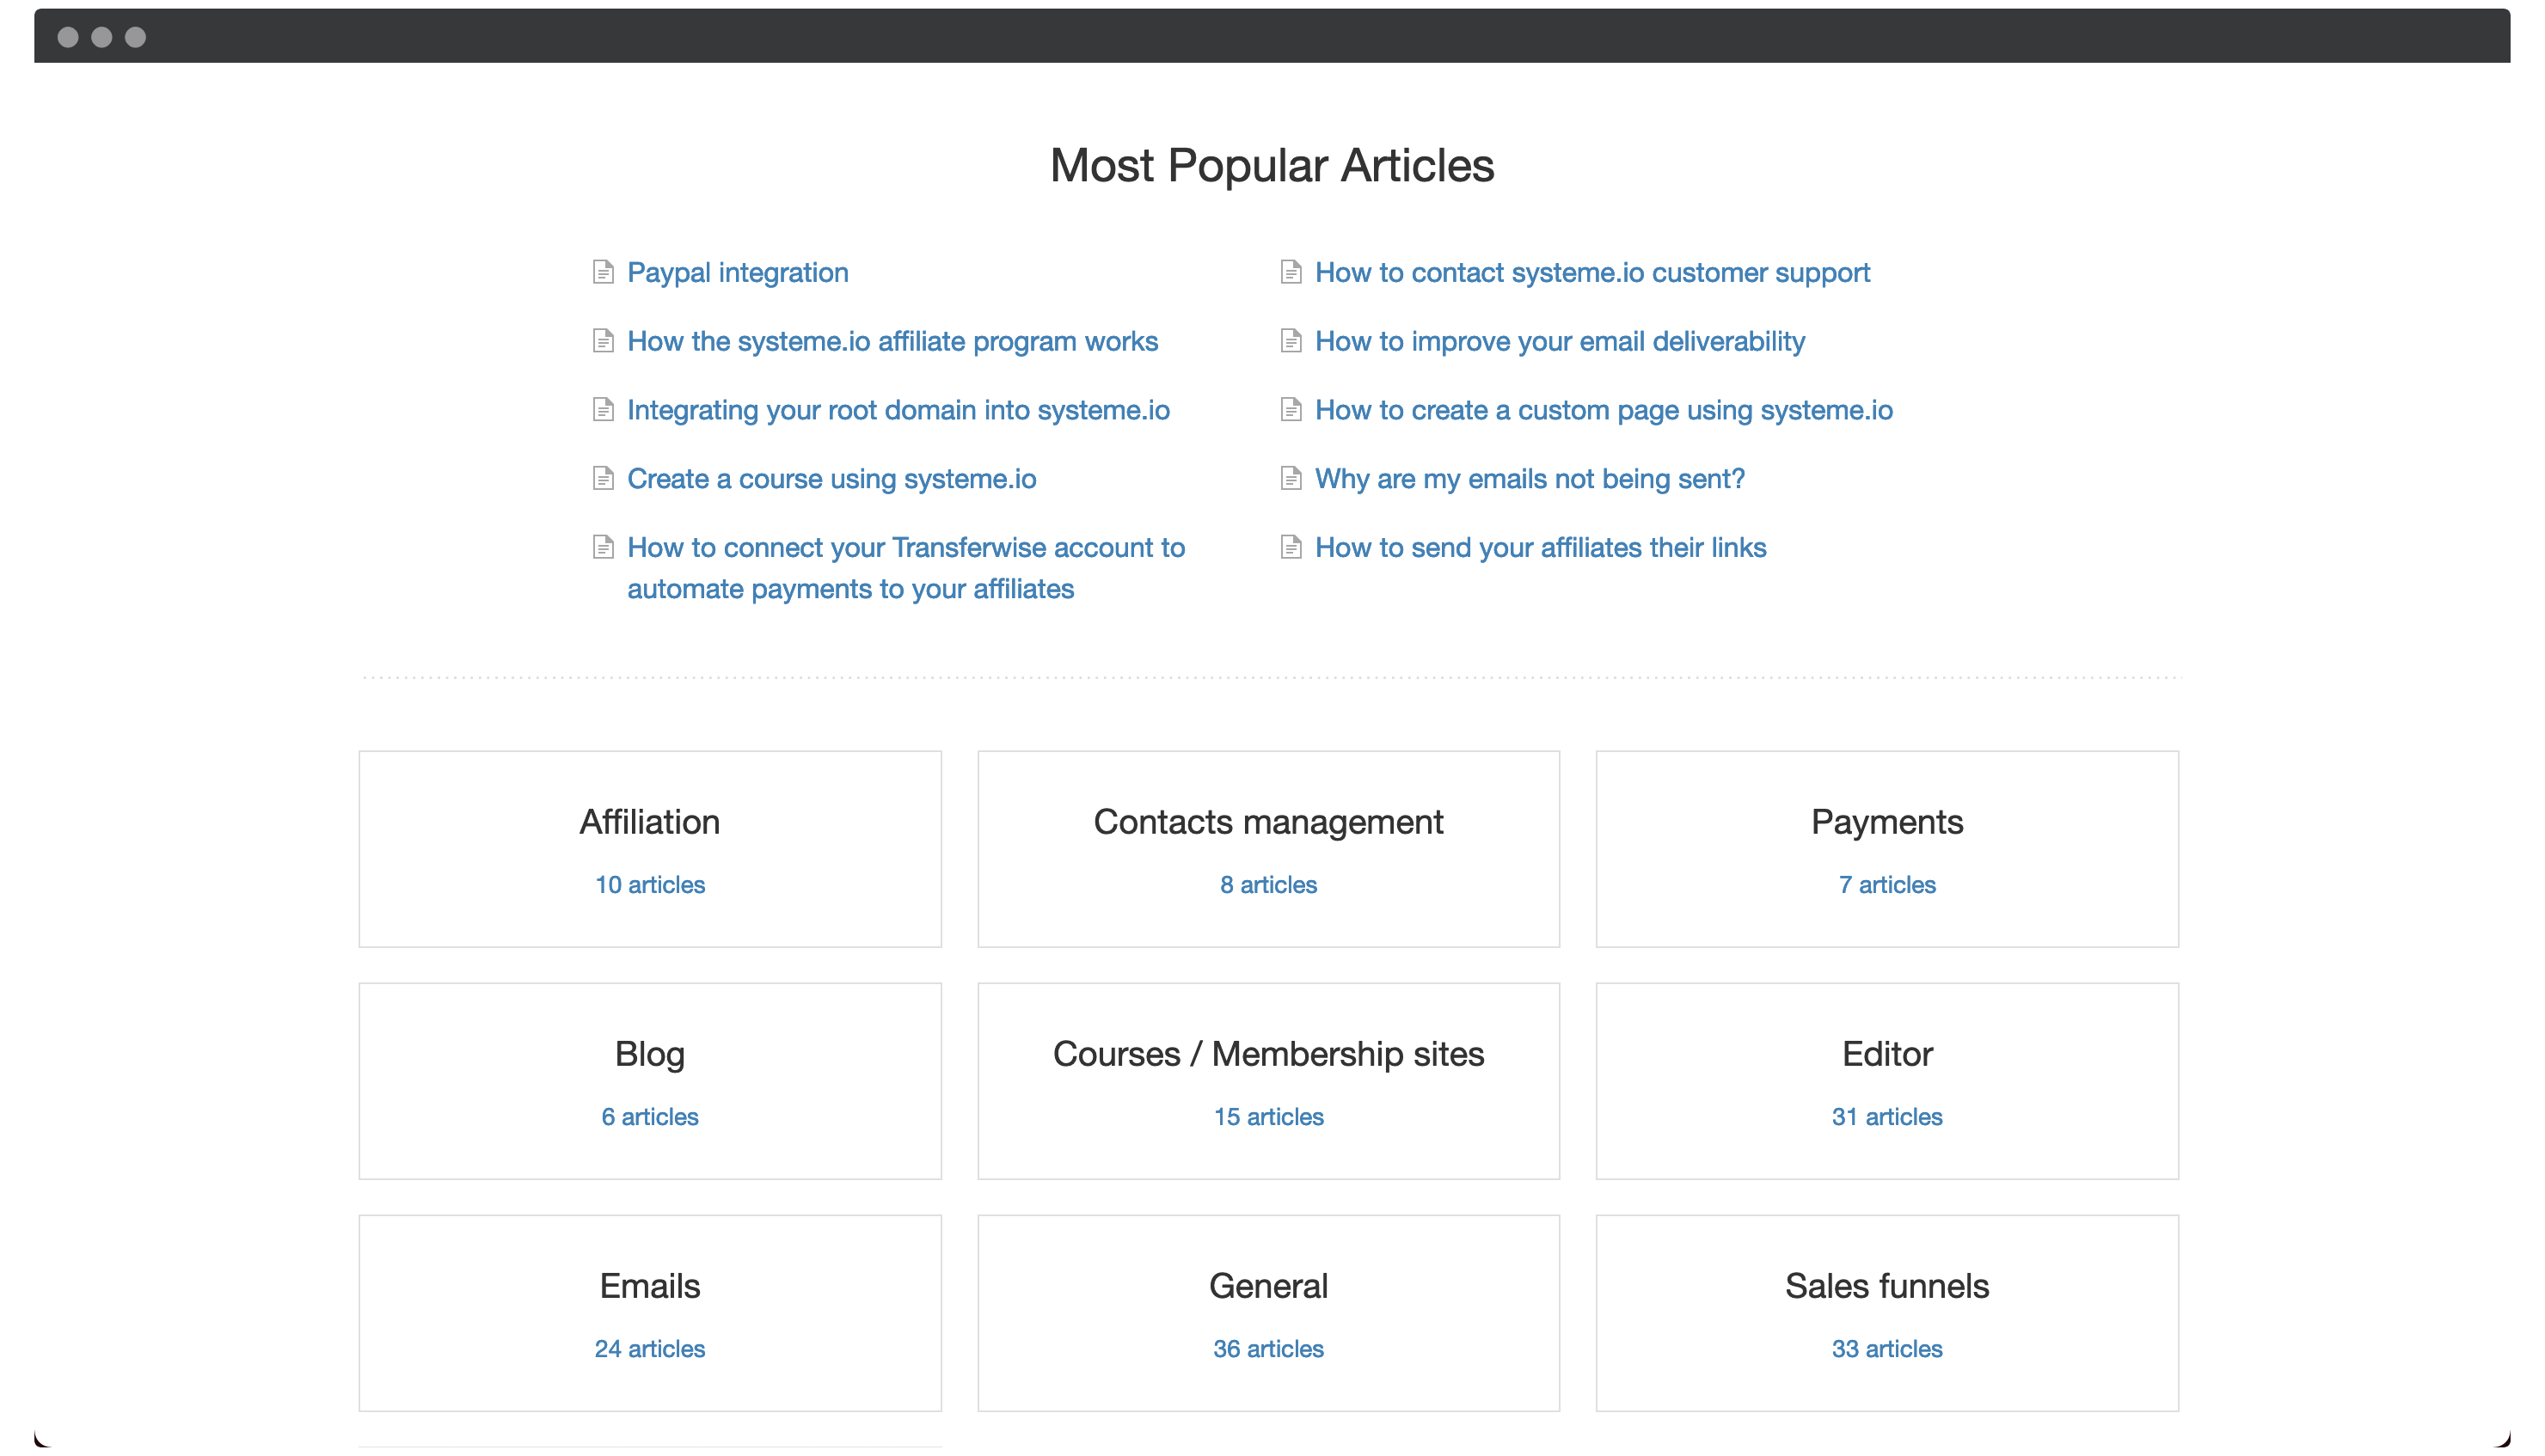 The well-stocked knowledge base.